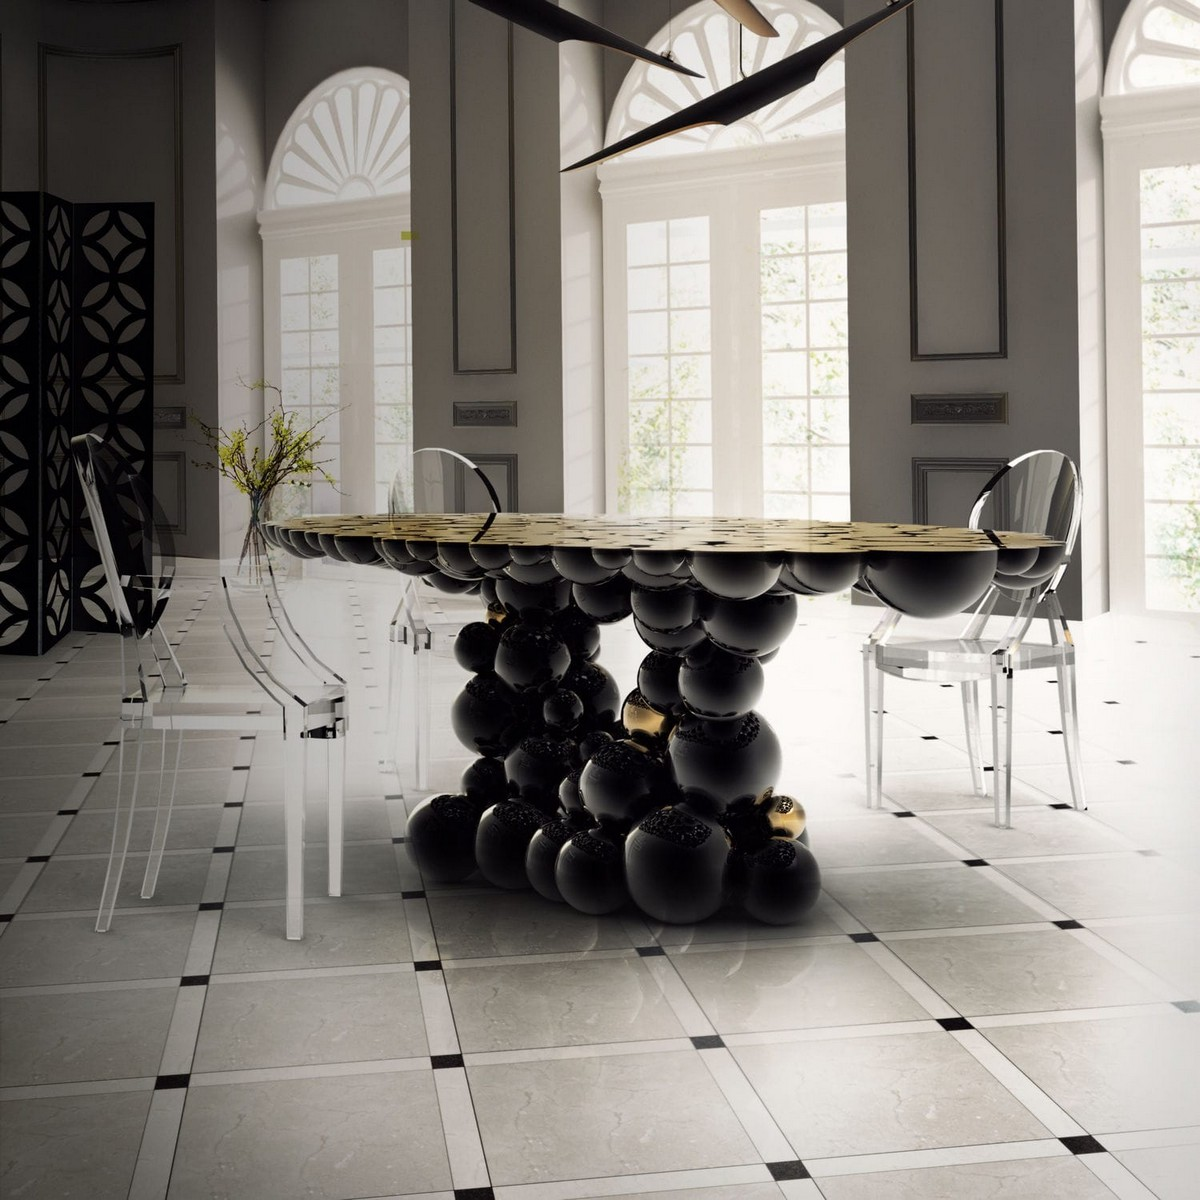 Artistic Dining Table Ideas For An Exquisite Dining Room Decor dining table ideas Artistic Dining Table Ideas For An Exquisite Dining Room Decor newton